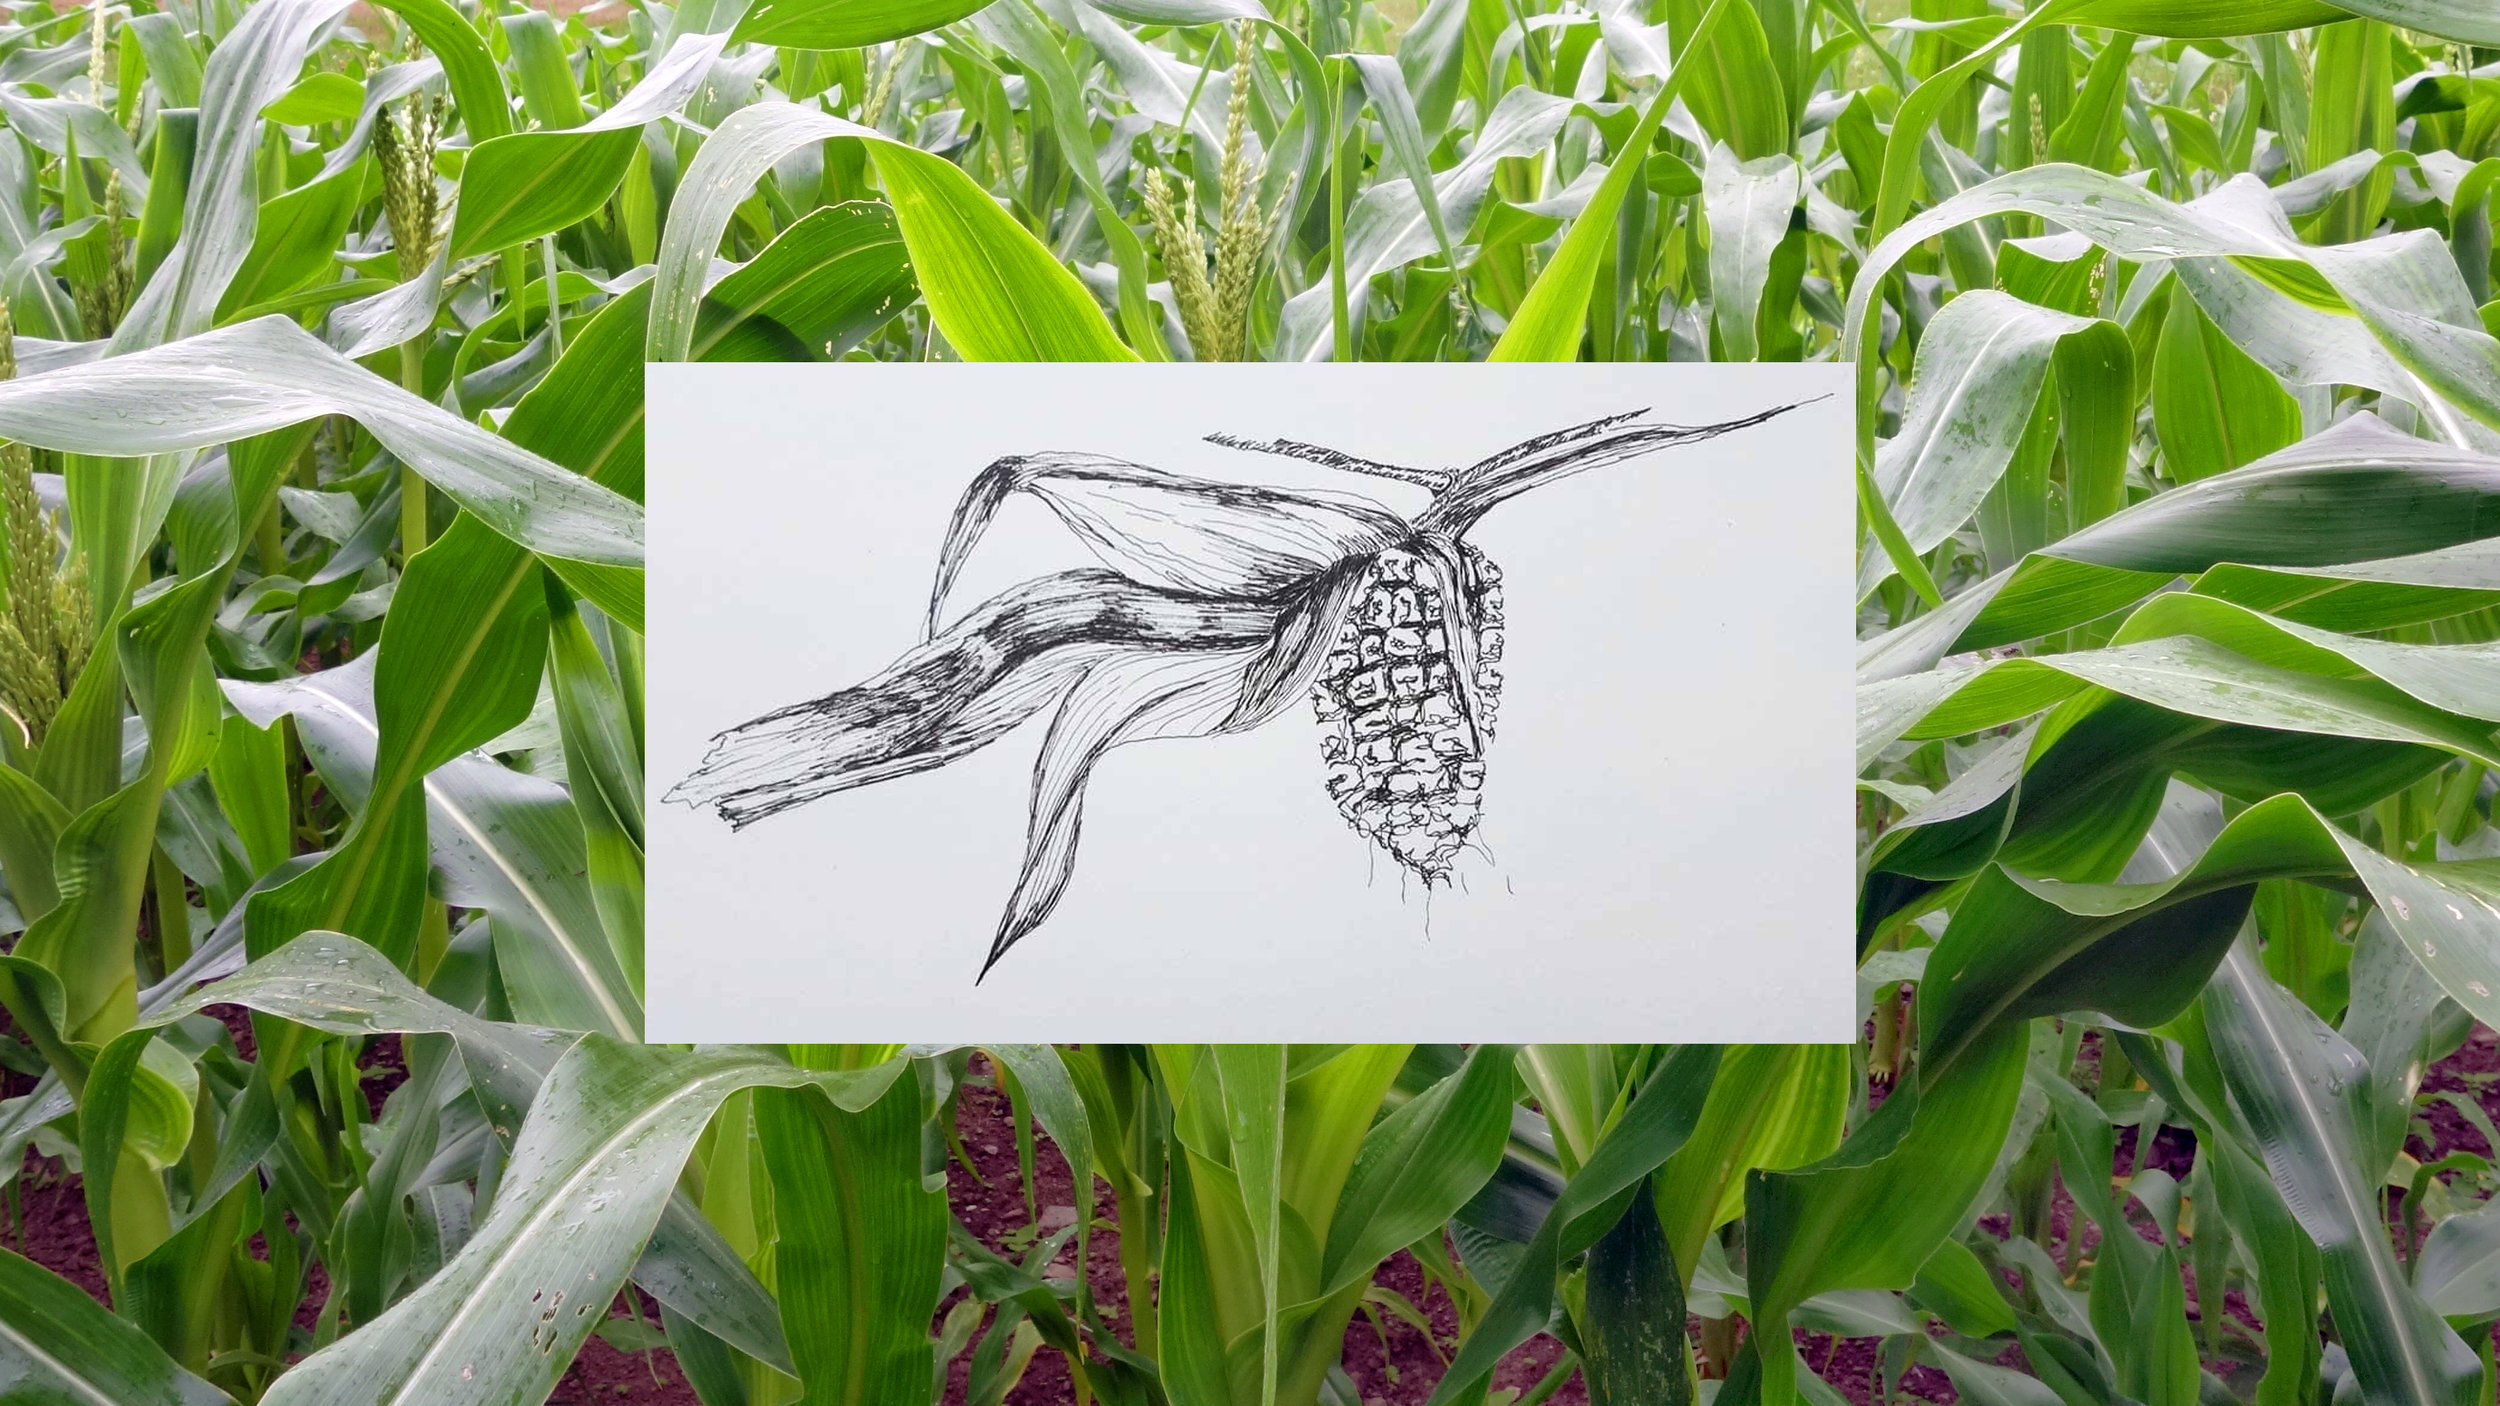 Photo: Abenaki Calais Flint Corn grown by Chief Shirly Hook of the Koasek Traditional Band of the Koas Abenaki Nation at the Abenaki Heritage Gardens in West Braintree, Vermont. Drawing: Abenaki Koas Corn by Amy Hook-Therrien.